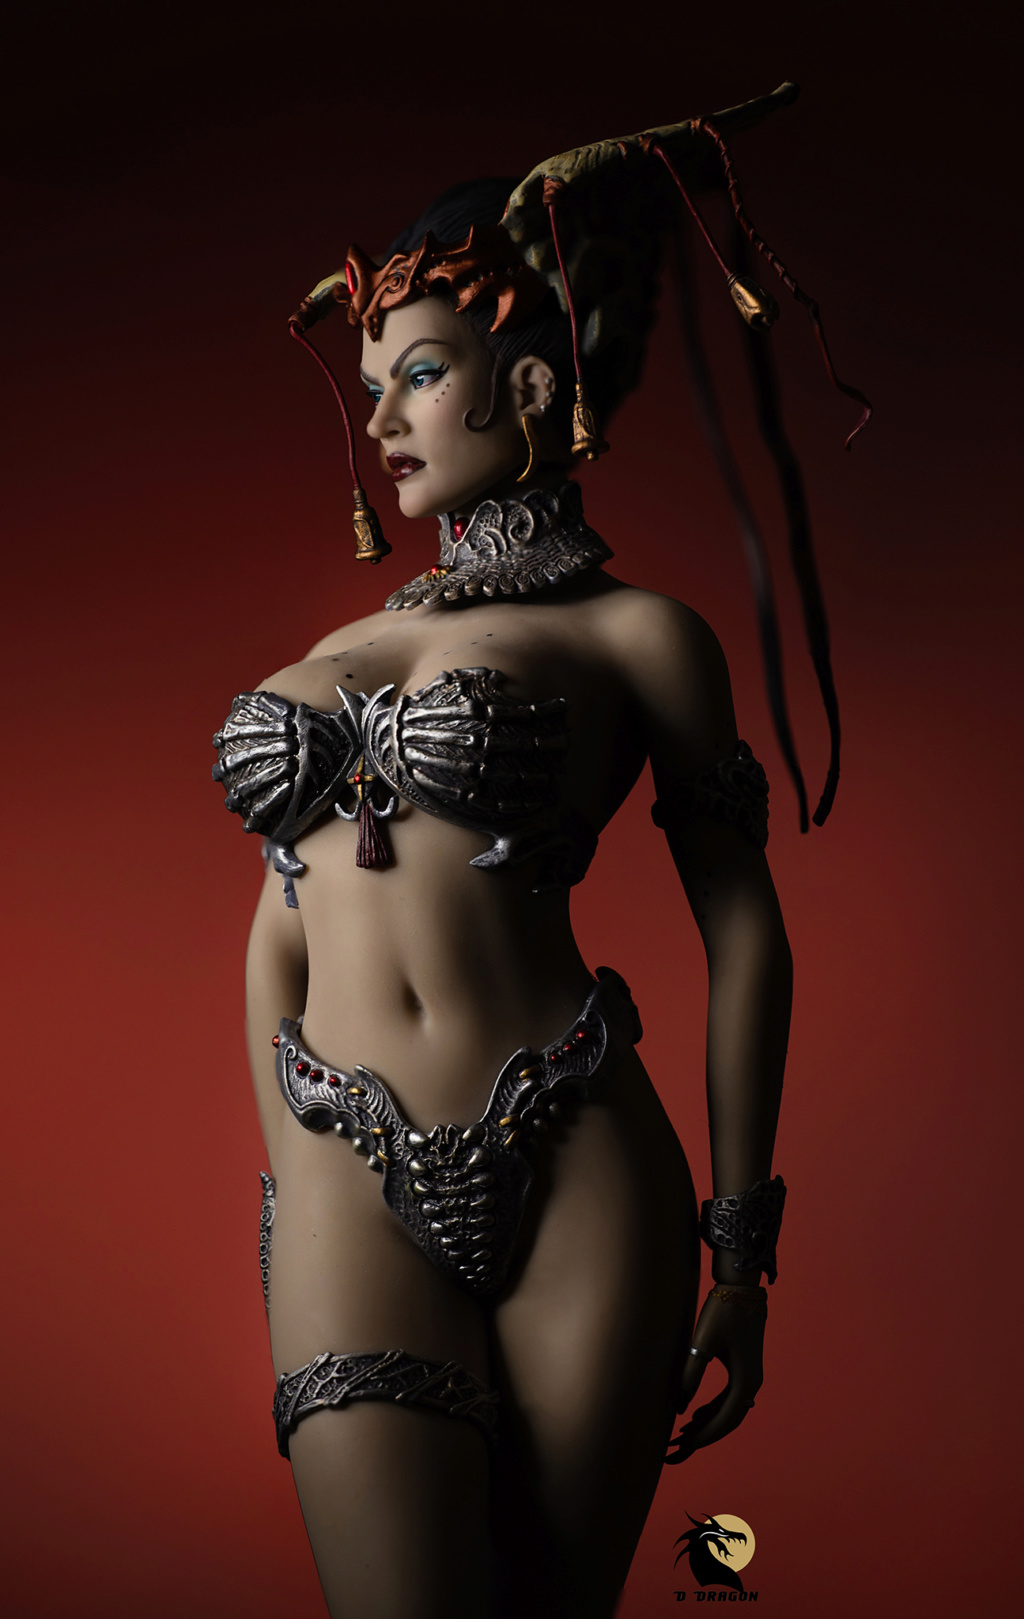 tbleague - NEW PRODUCT: Tbleague x SIDESHOW New: 1/6 Court of the Dead: Gethsemoni The Dead Queen action figure (PL2019-147) - Page 2 Gethse24